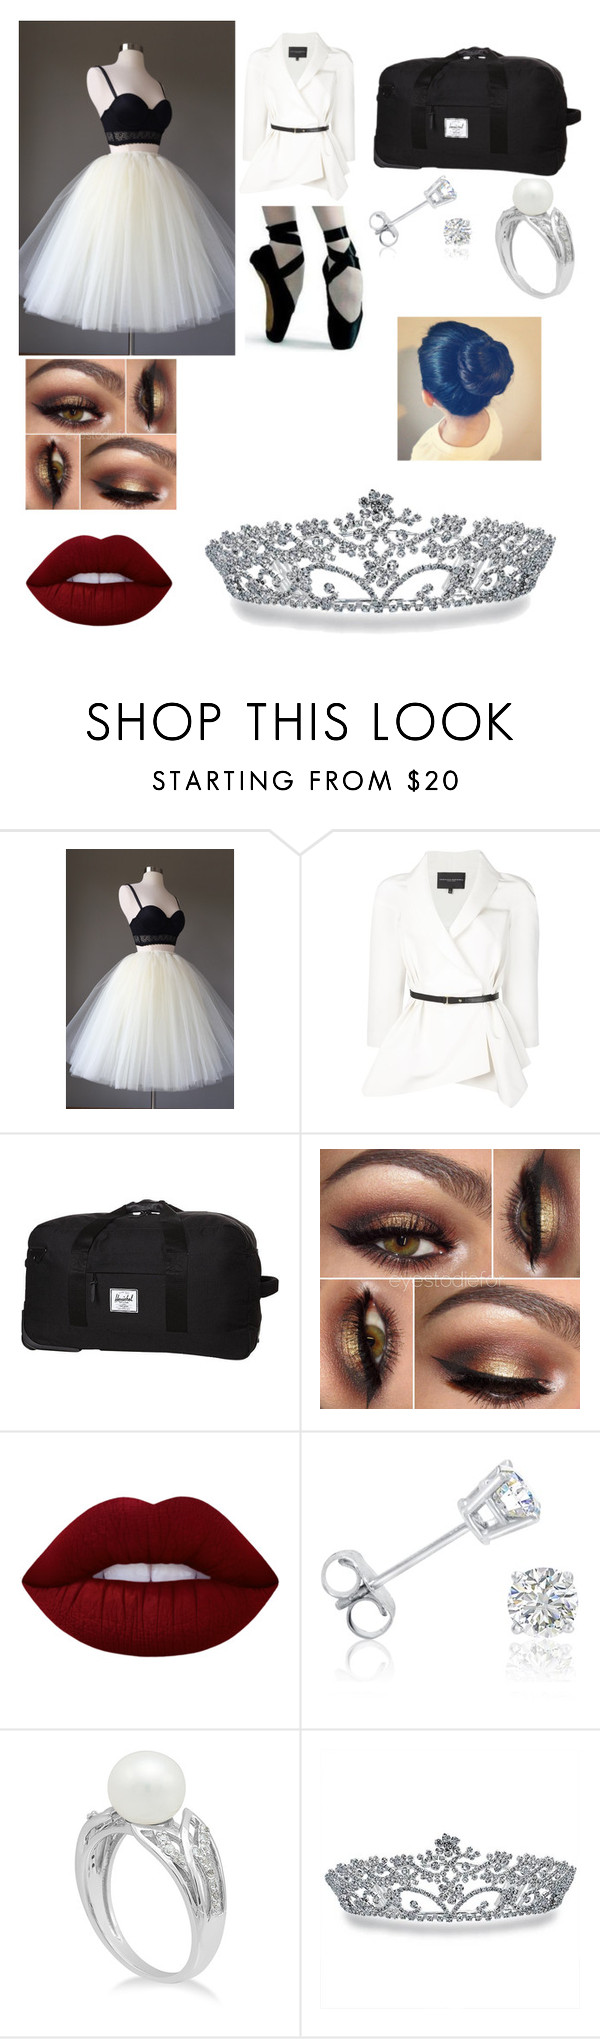 """""""The performance"""" by hoshi0810 on Polyvore featuring Carolina Herrera, Herschel Supply Co., Lime Crime, Amanda Rose Collection and Bling Jewelry"""